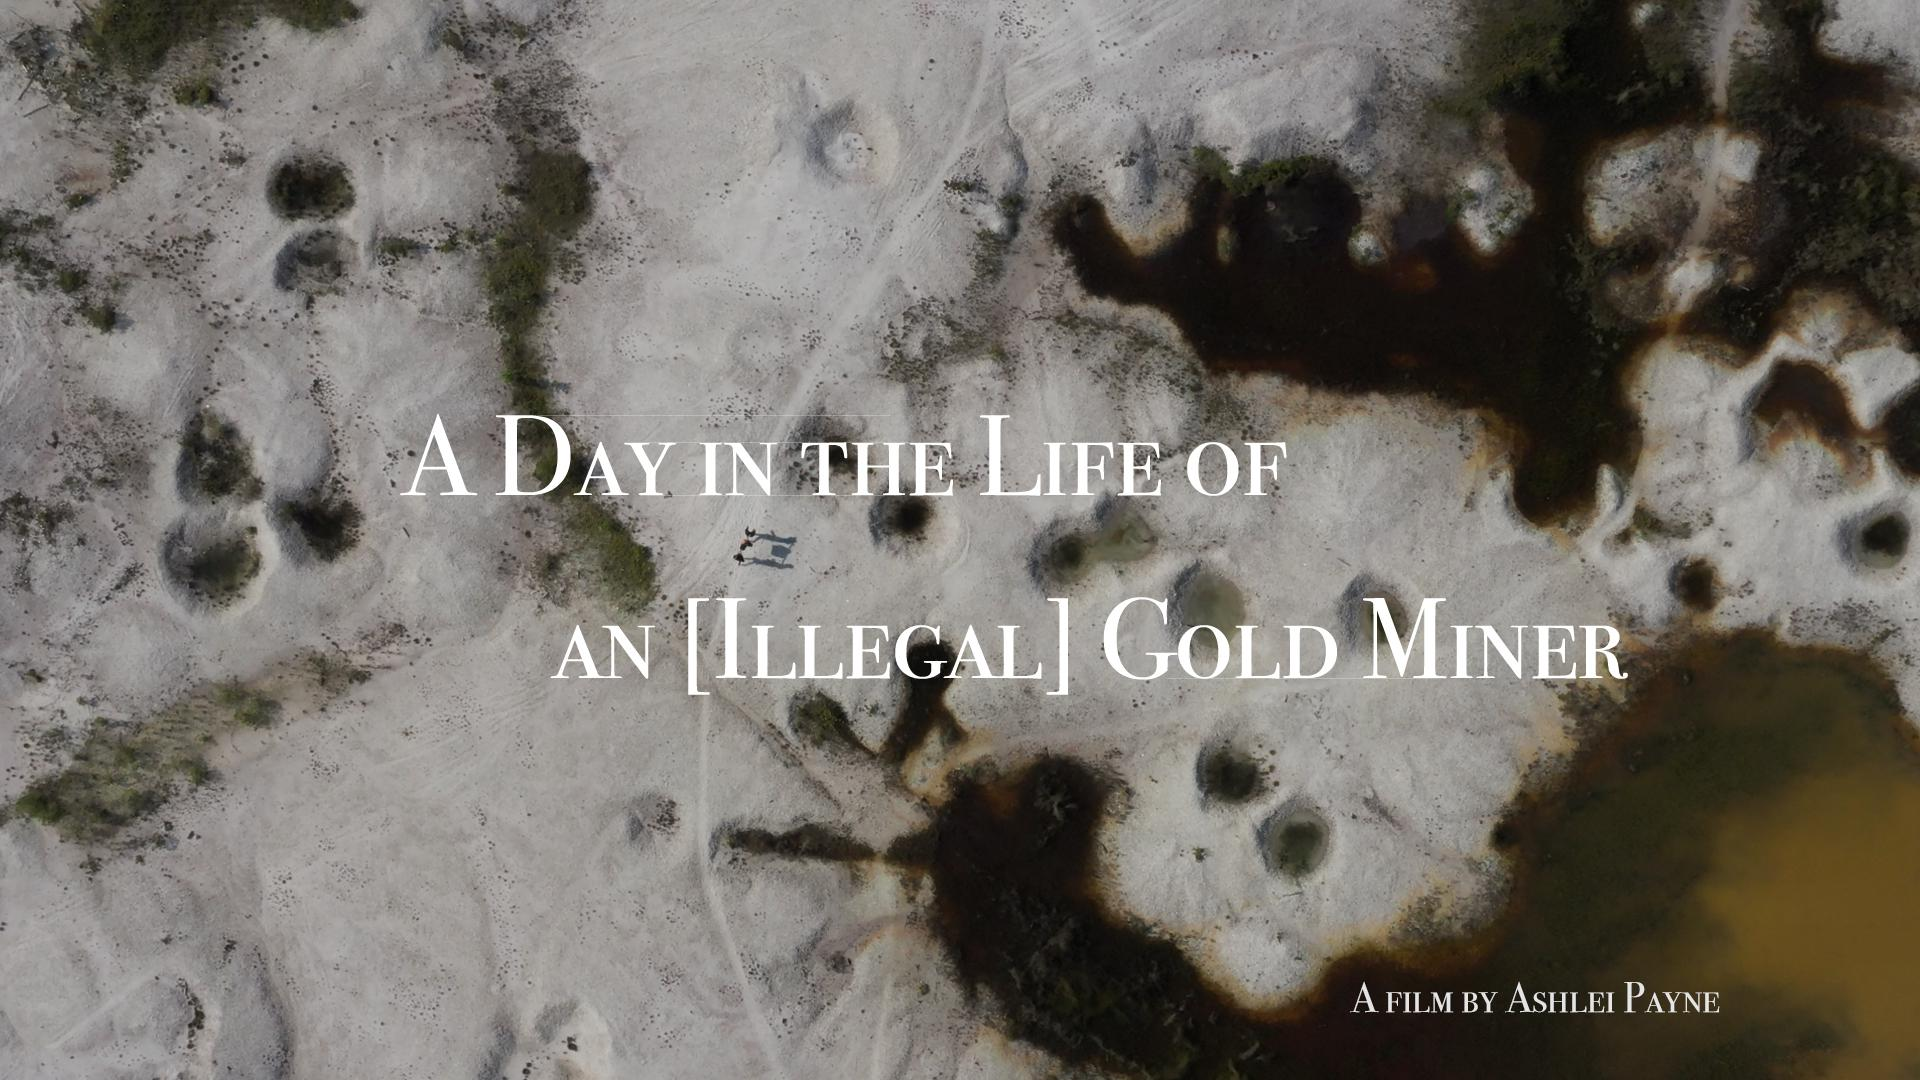 A Day in the Life Of an [Illegal] Gold Miner